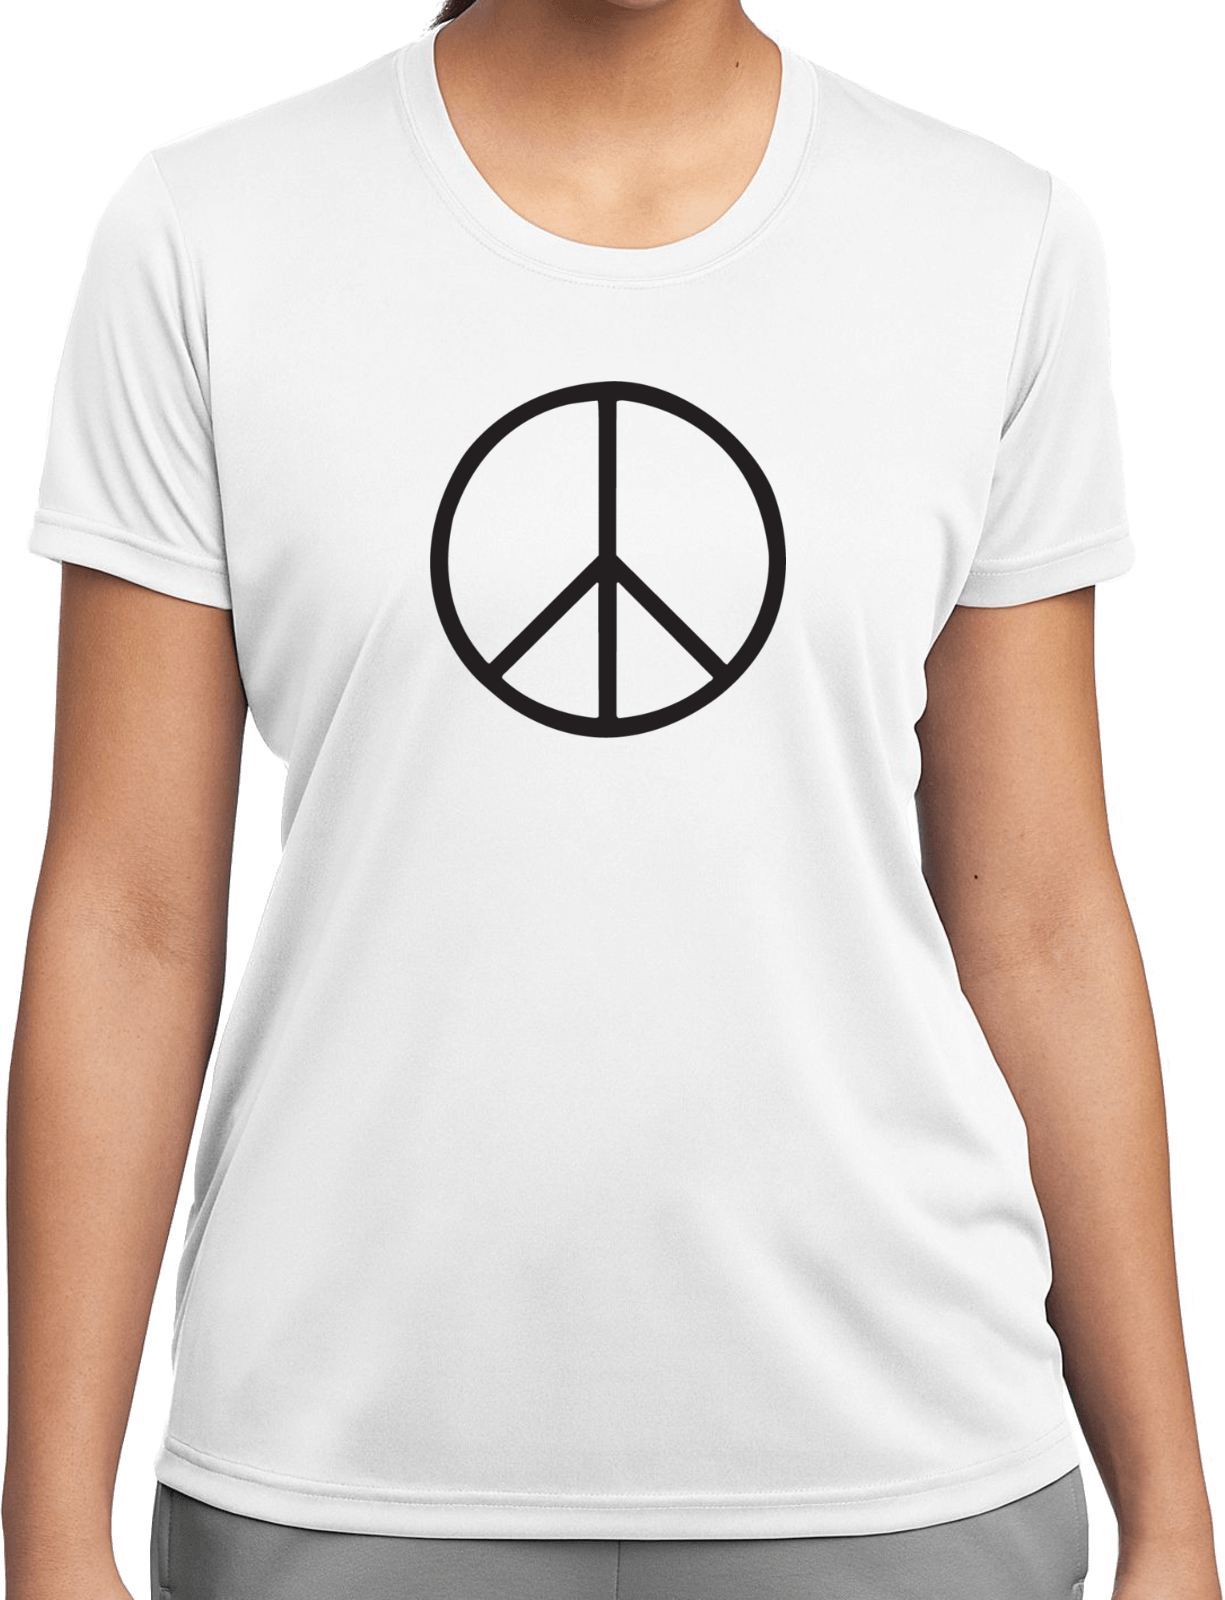 Ladies peace shirt basic peace black moisture wicking tee for Sweat wicking t shirts